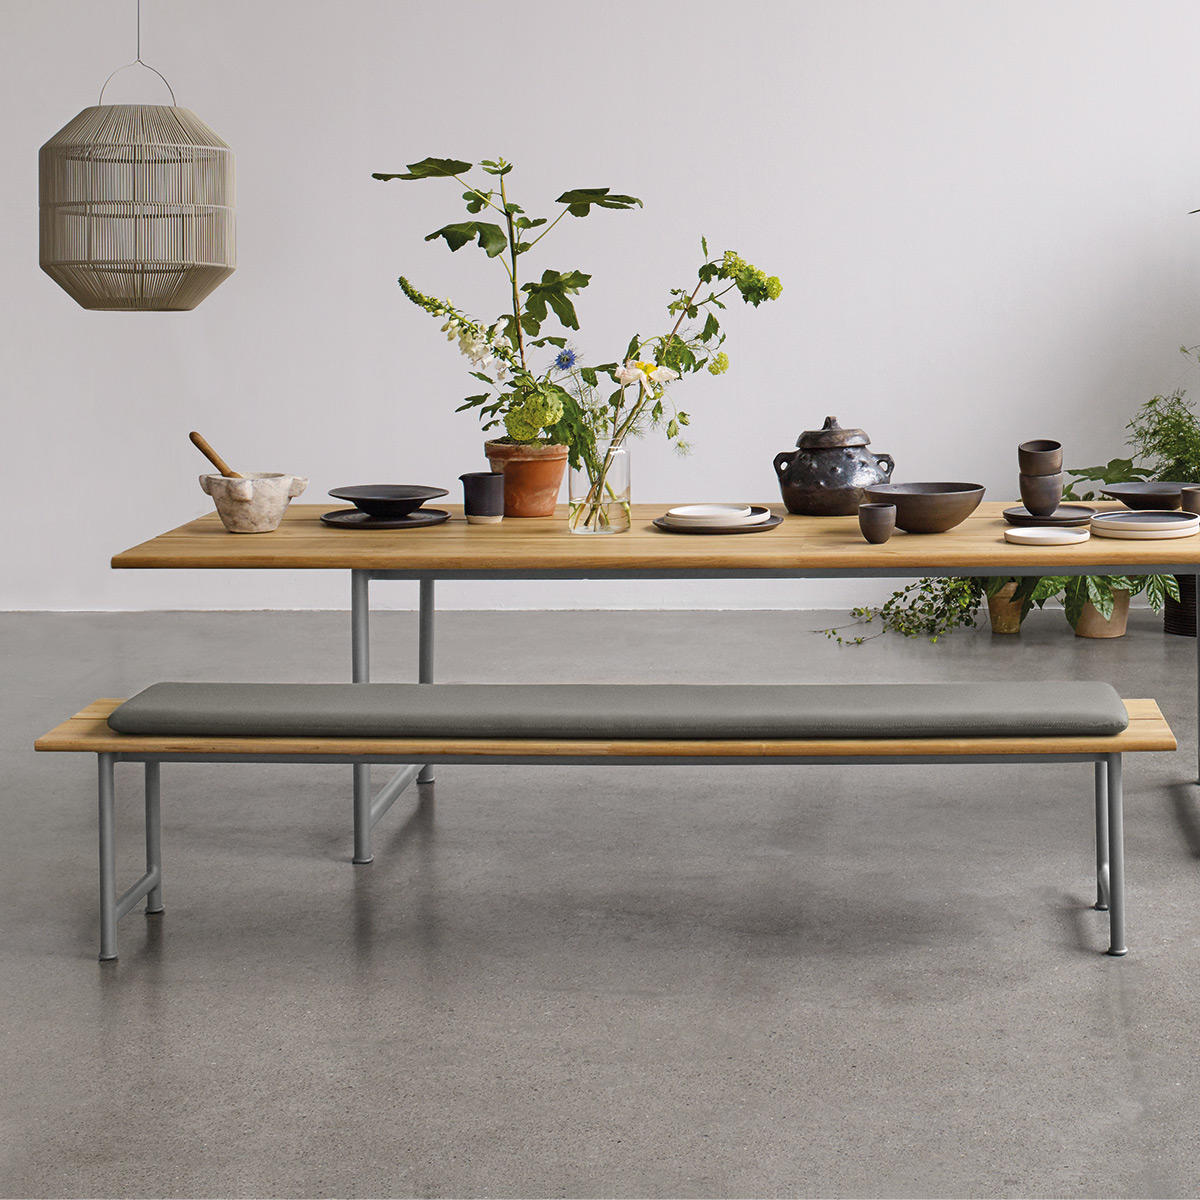 Buy Seat Cushion For Atmosphere Dining Bench By Gloster The Worm That Turned Revitalising Your Outdoor Space